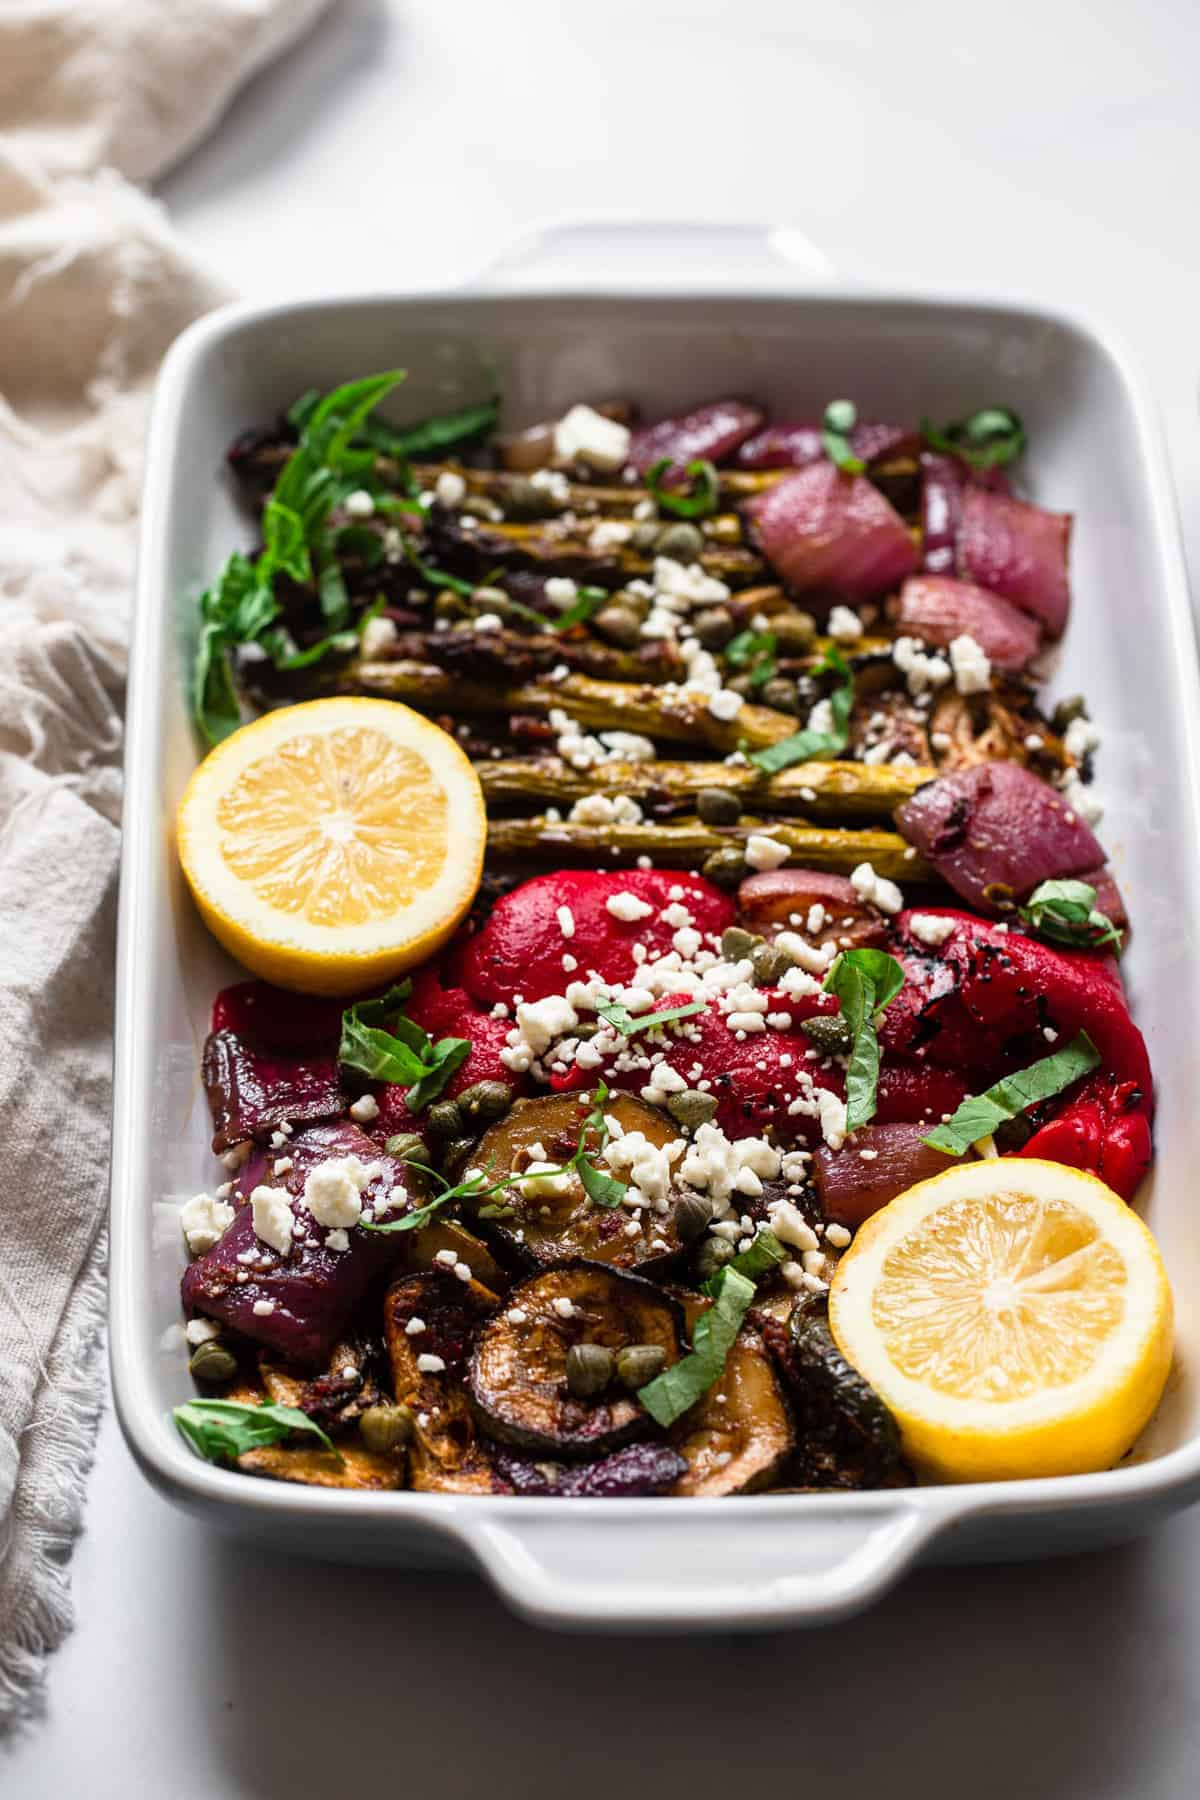 Balsamic grilled vegetable salad in a baking dish with lemon on top